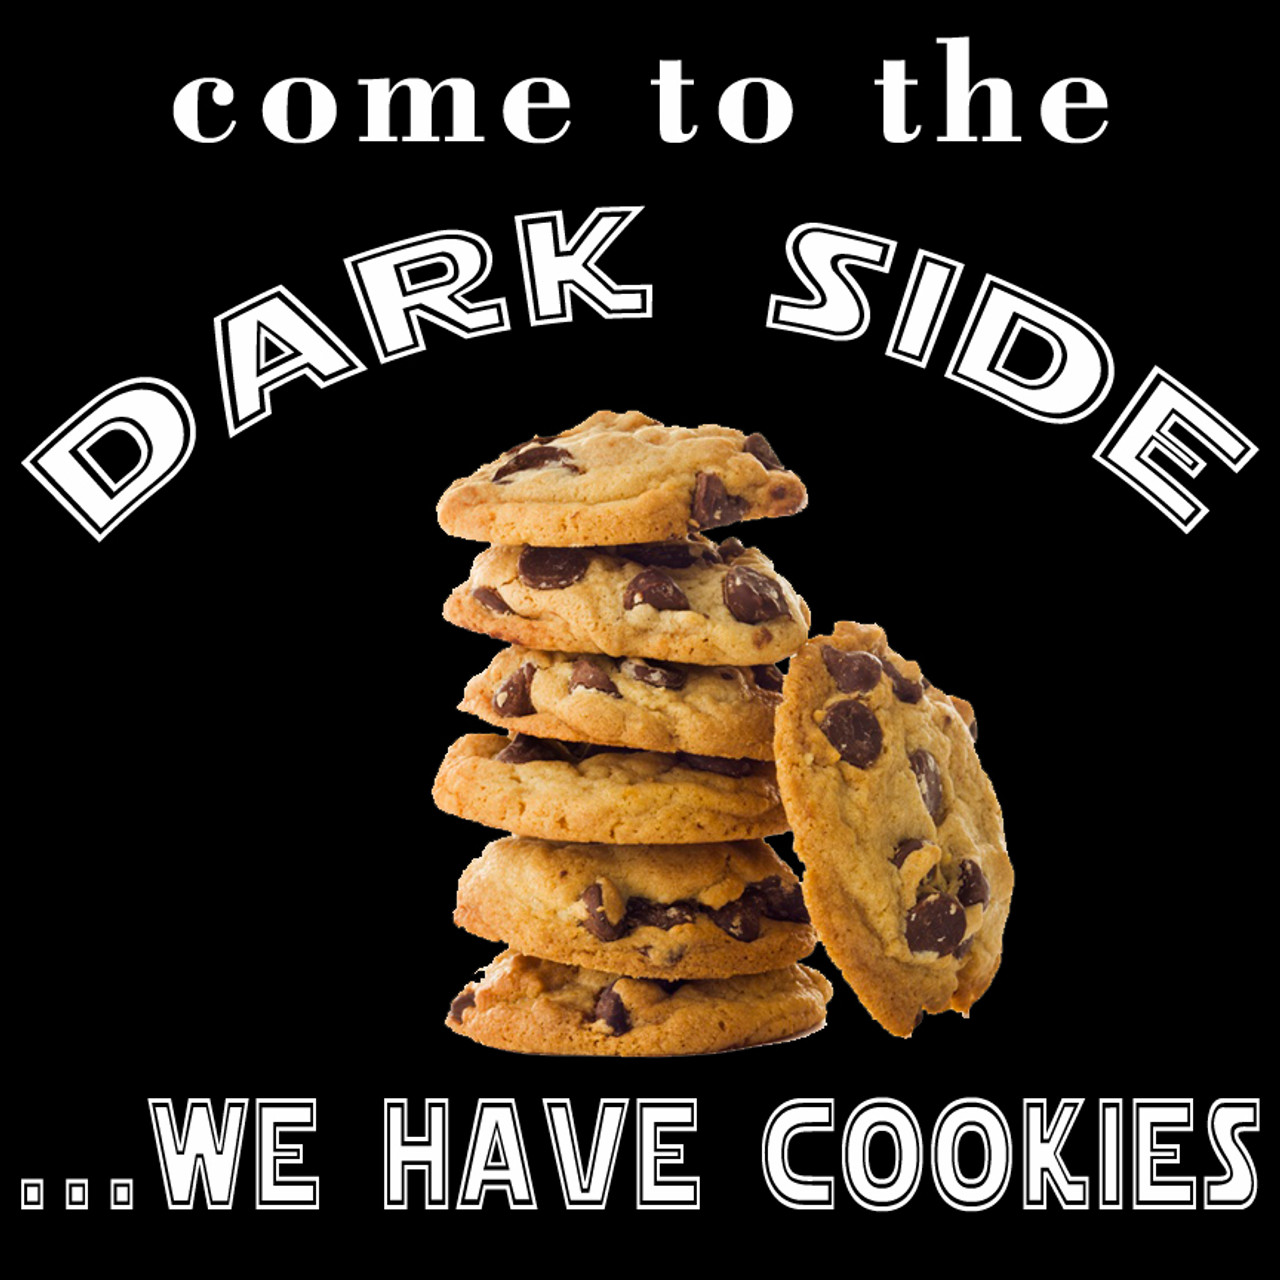 come_to_the_dark_side_we_have_cookies_ts